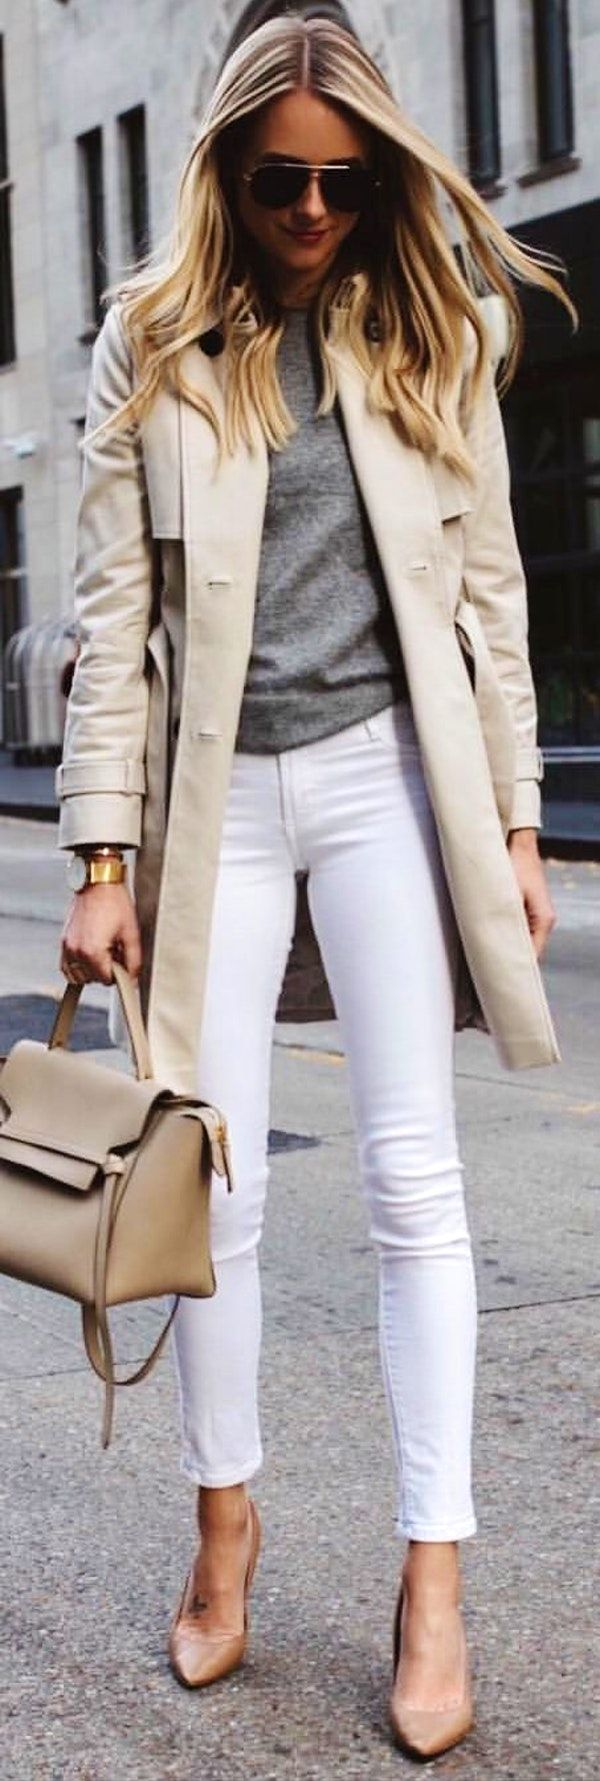 popular winter outfits to wear now jean outfits white denim